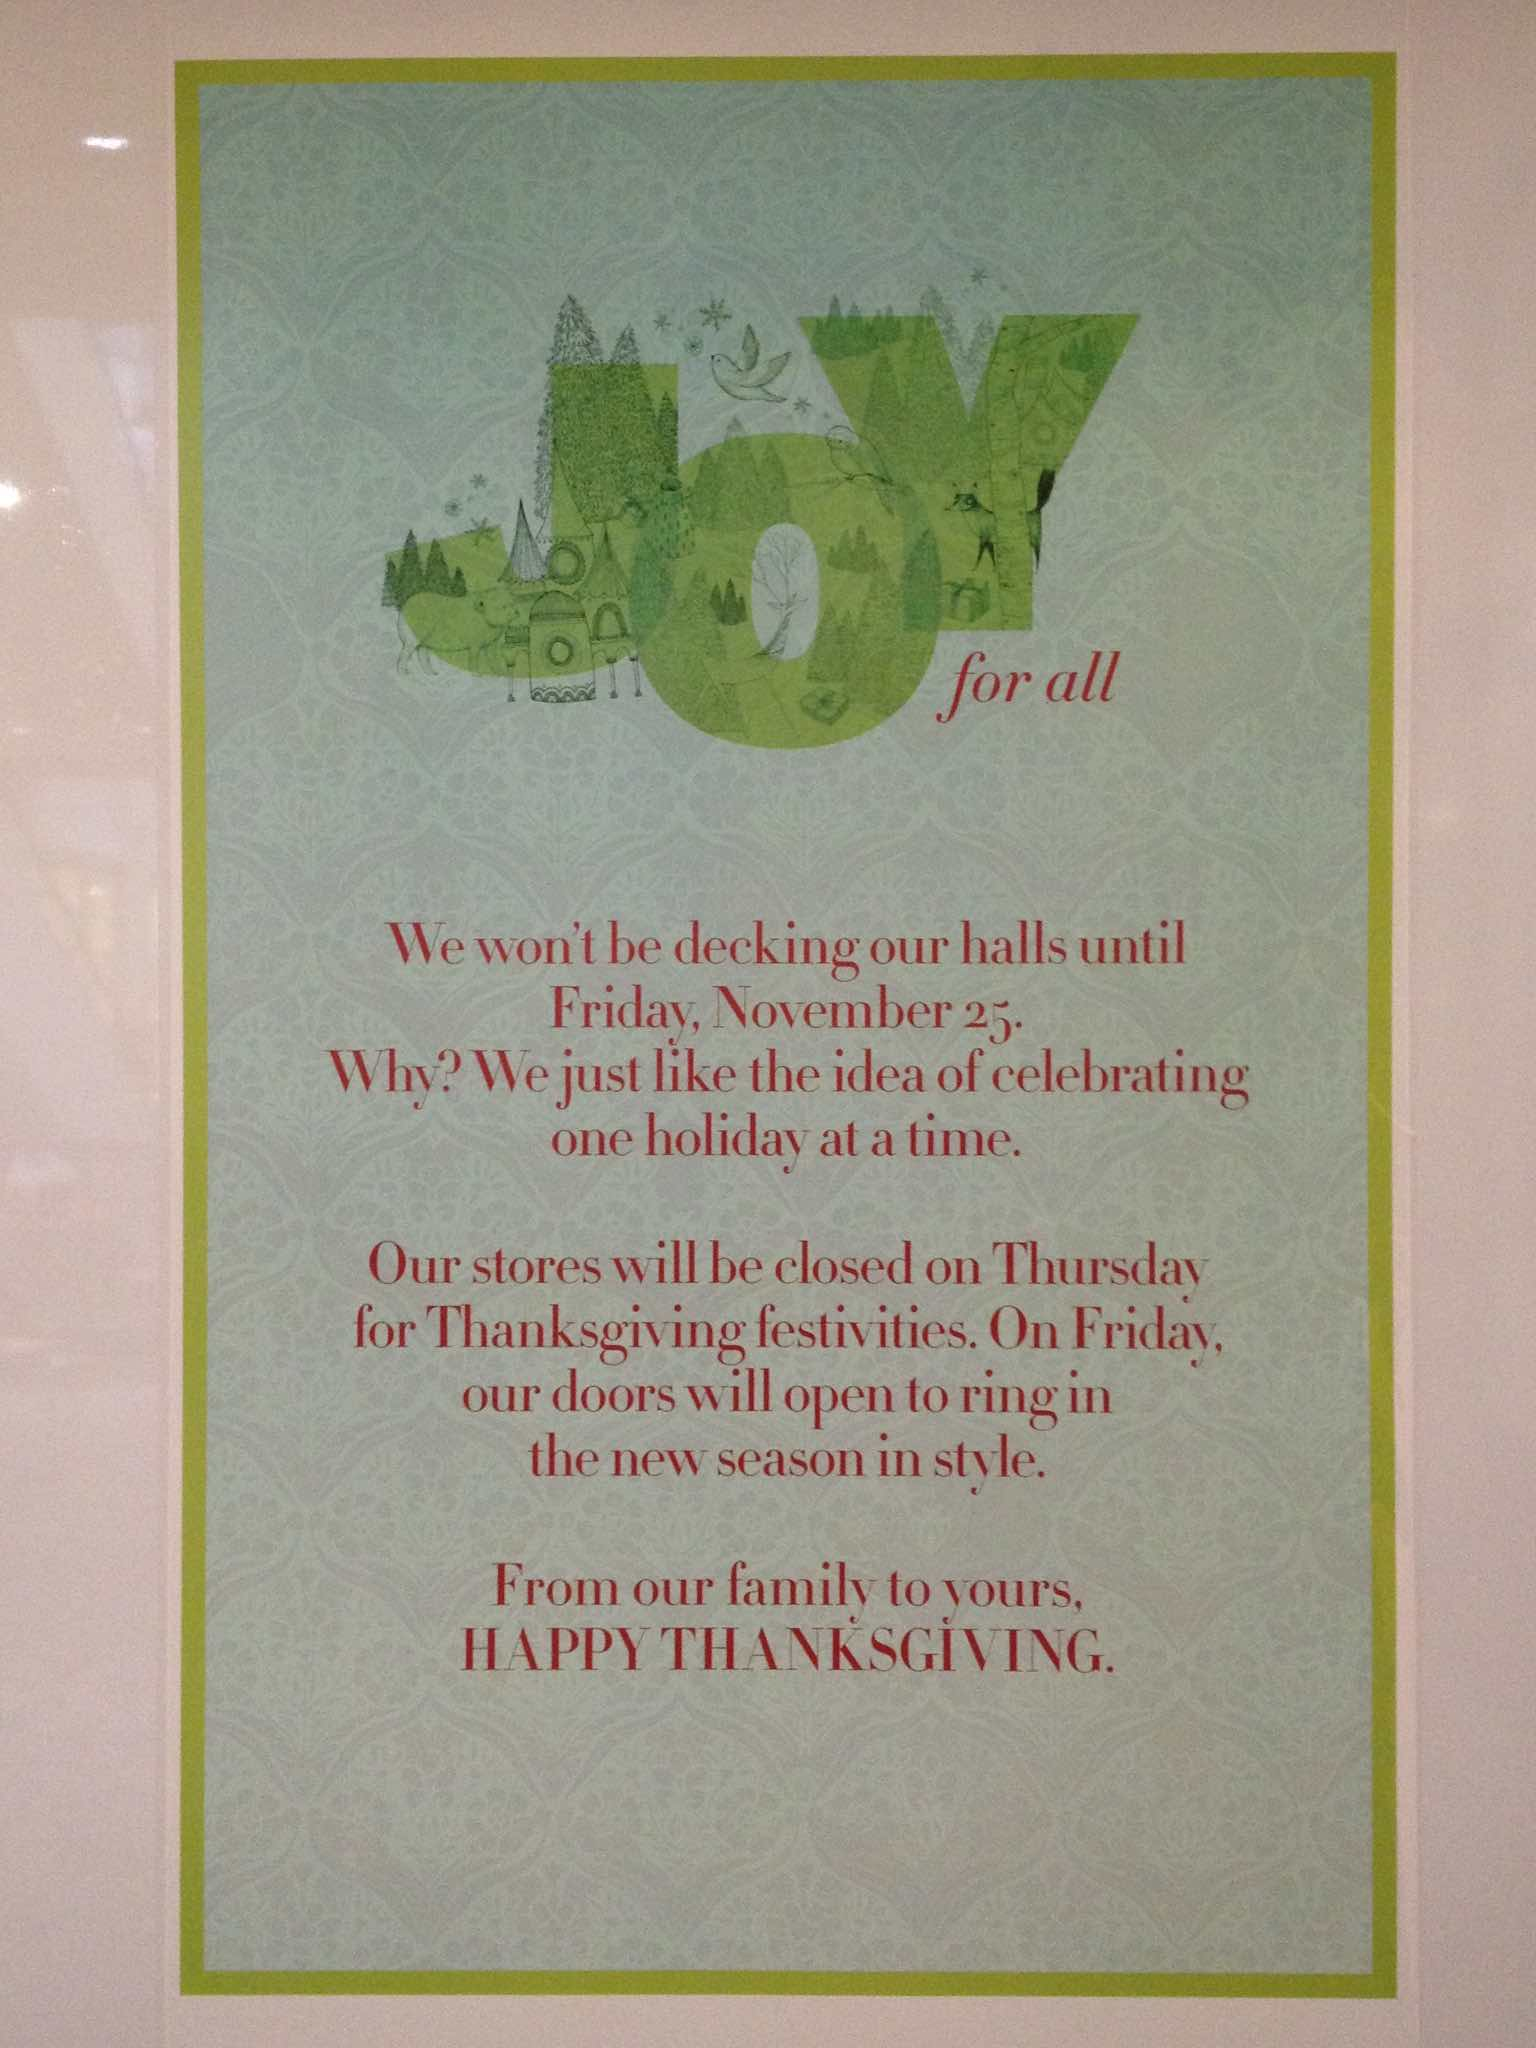 Sign seen in Nordstrom window, text follows